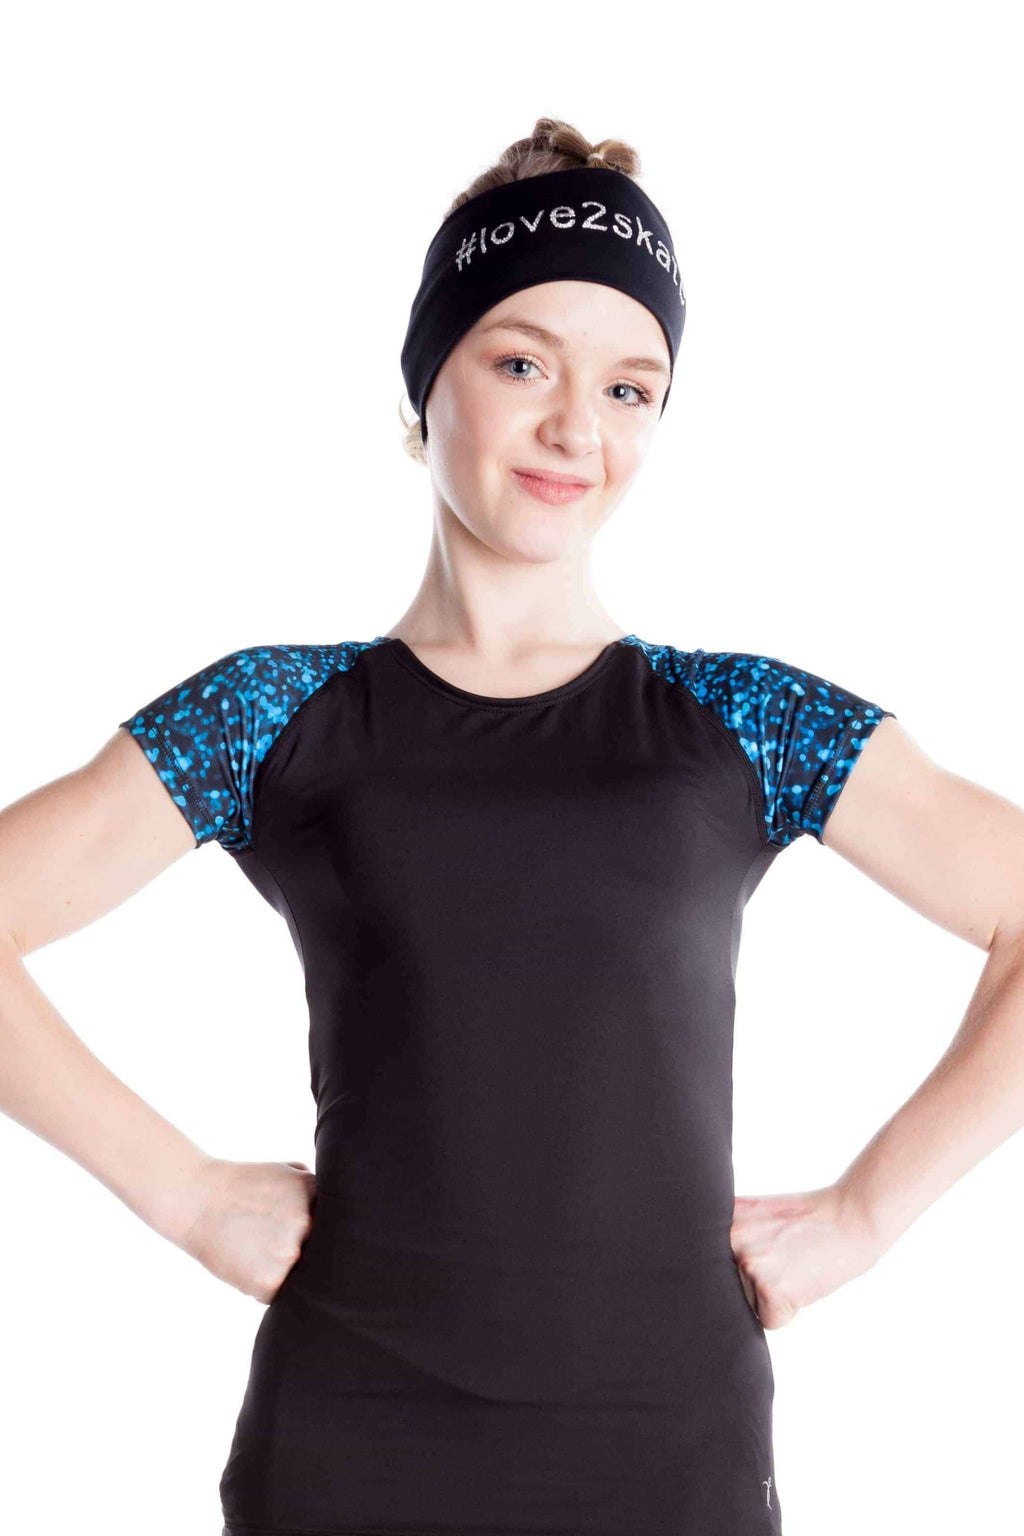 Black t-shirt with sublimated sleeves - Blue sparkle - Elite Xpression